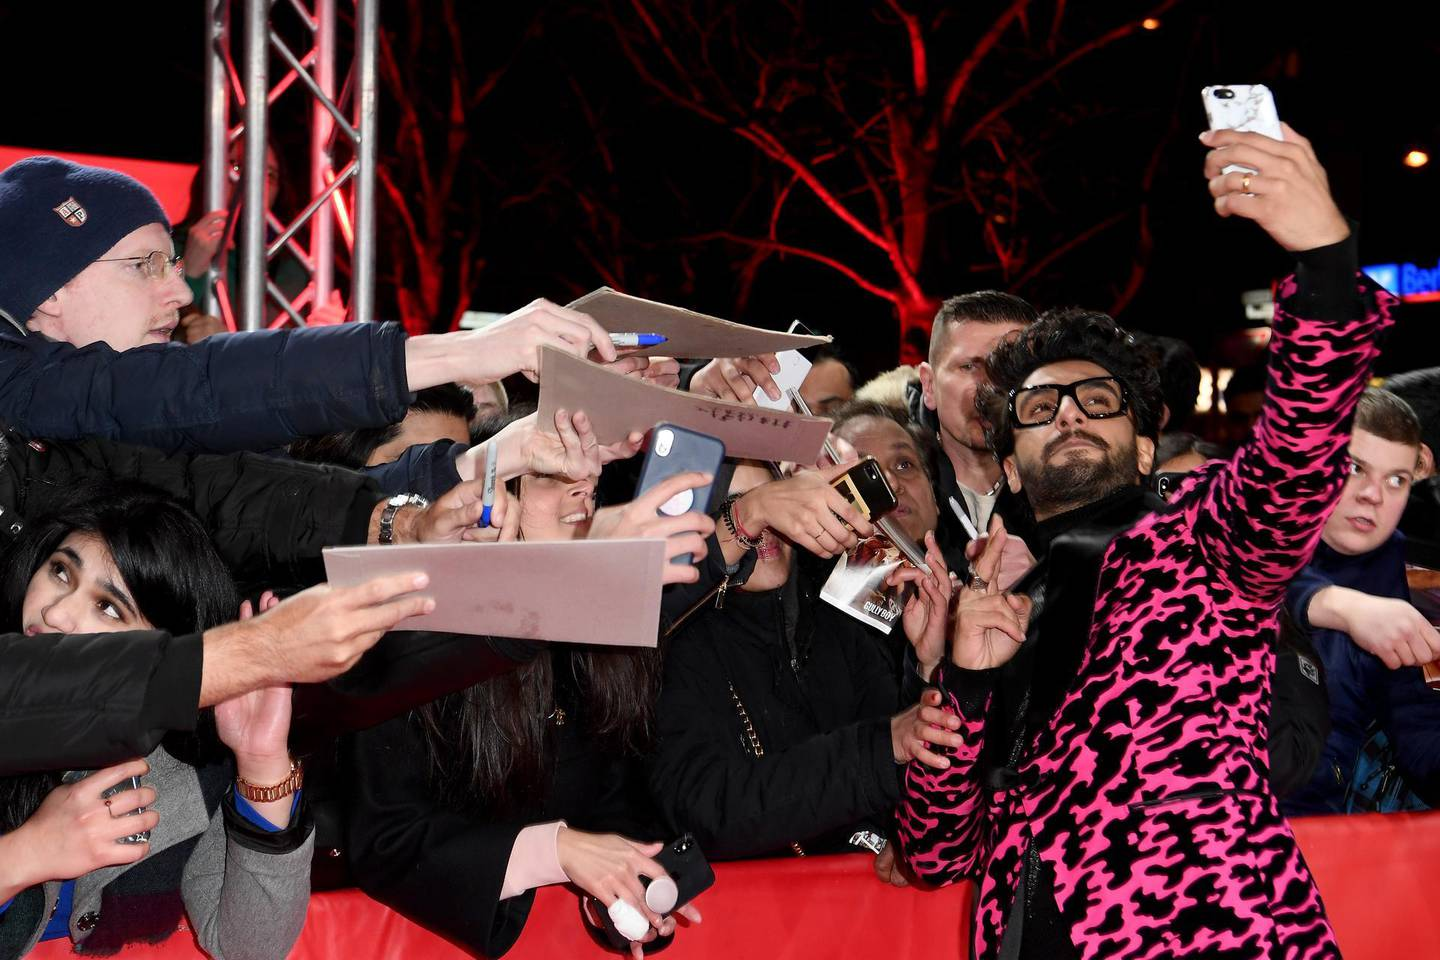 """BERLIN, GERMANY - FEBRUARY 09: Ranveer Singh poses for a selfie with a fan while attending the """"Gully Boy"""" premiere during the 69th Berlinale International Film Festival Berlin at Friedrichstadtpalast on February 09, 2019 in Berlin, Germany. (Photo by Matthias Nareyek/Getty Images)"""